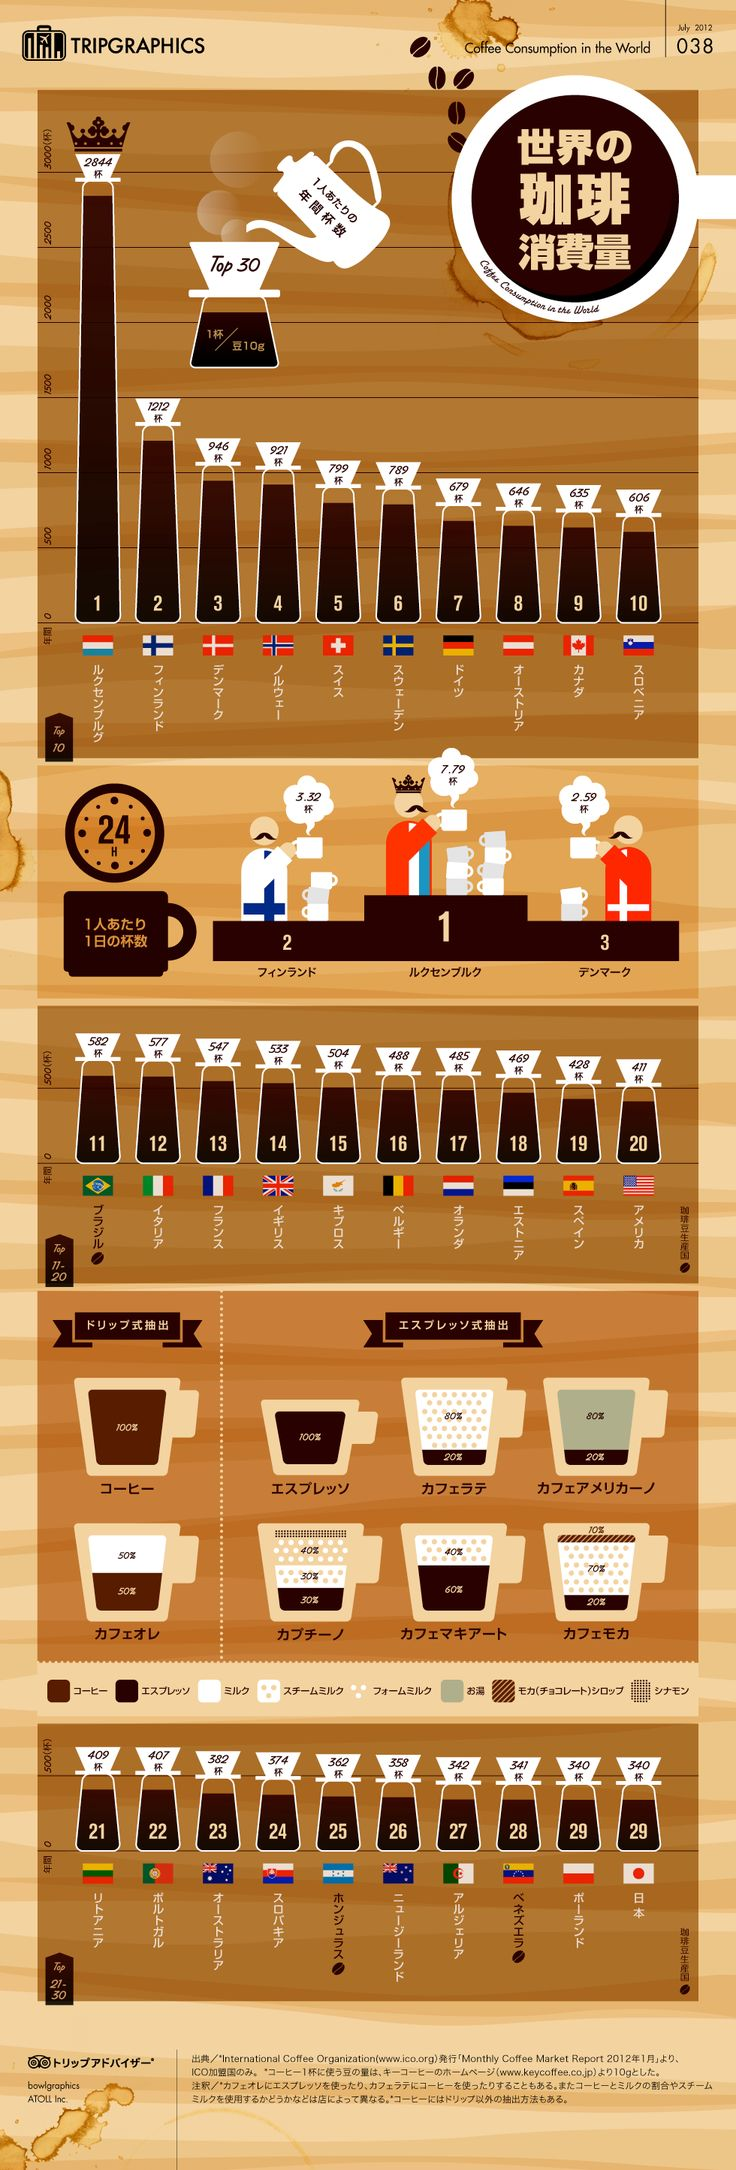 World coffee facts